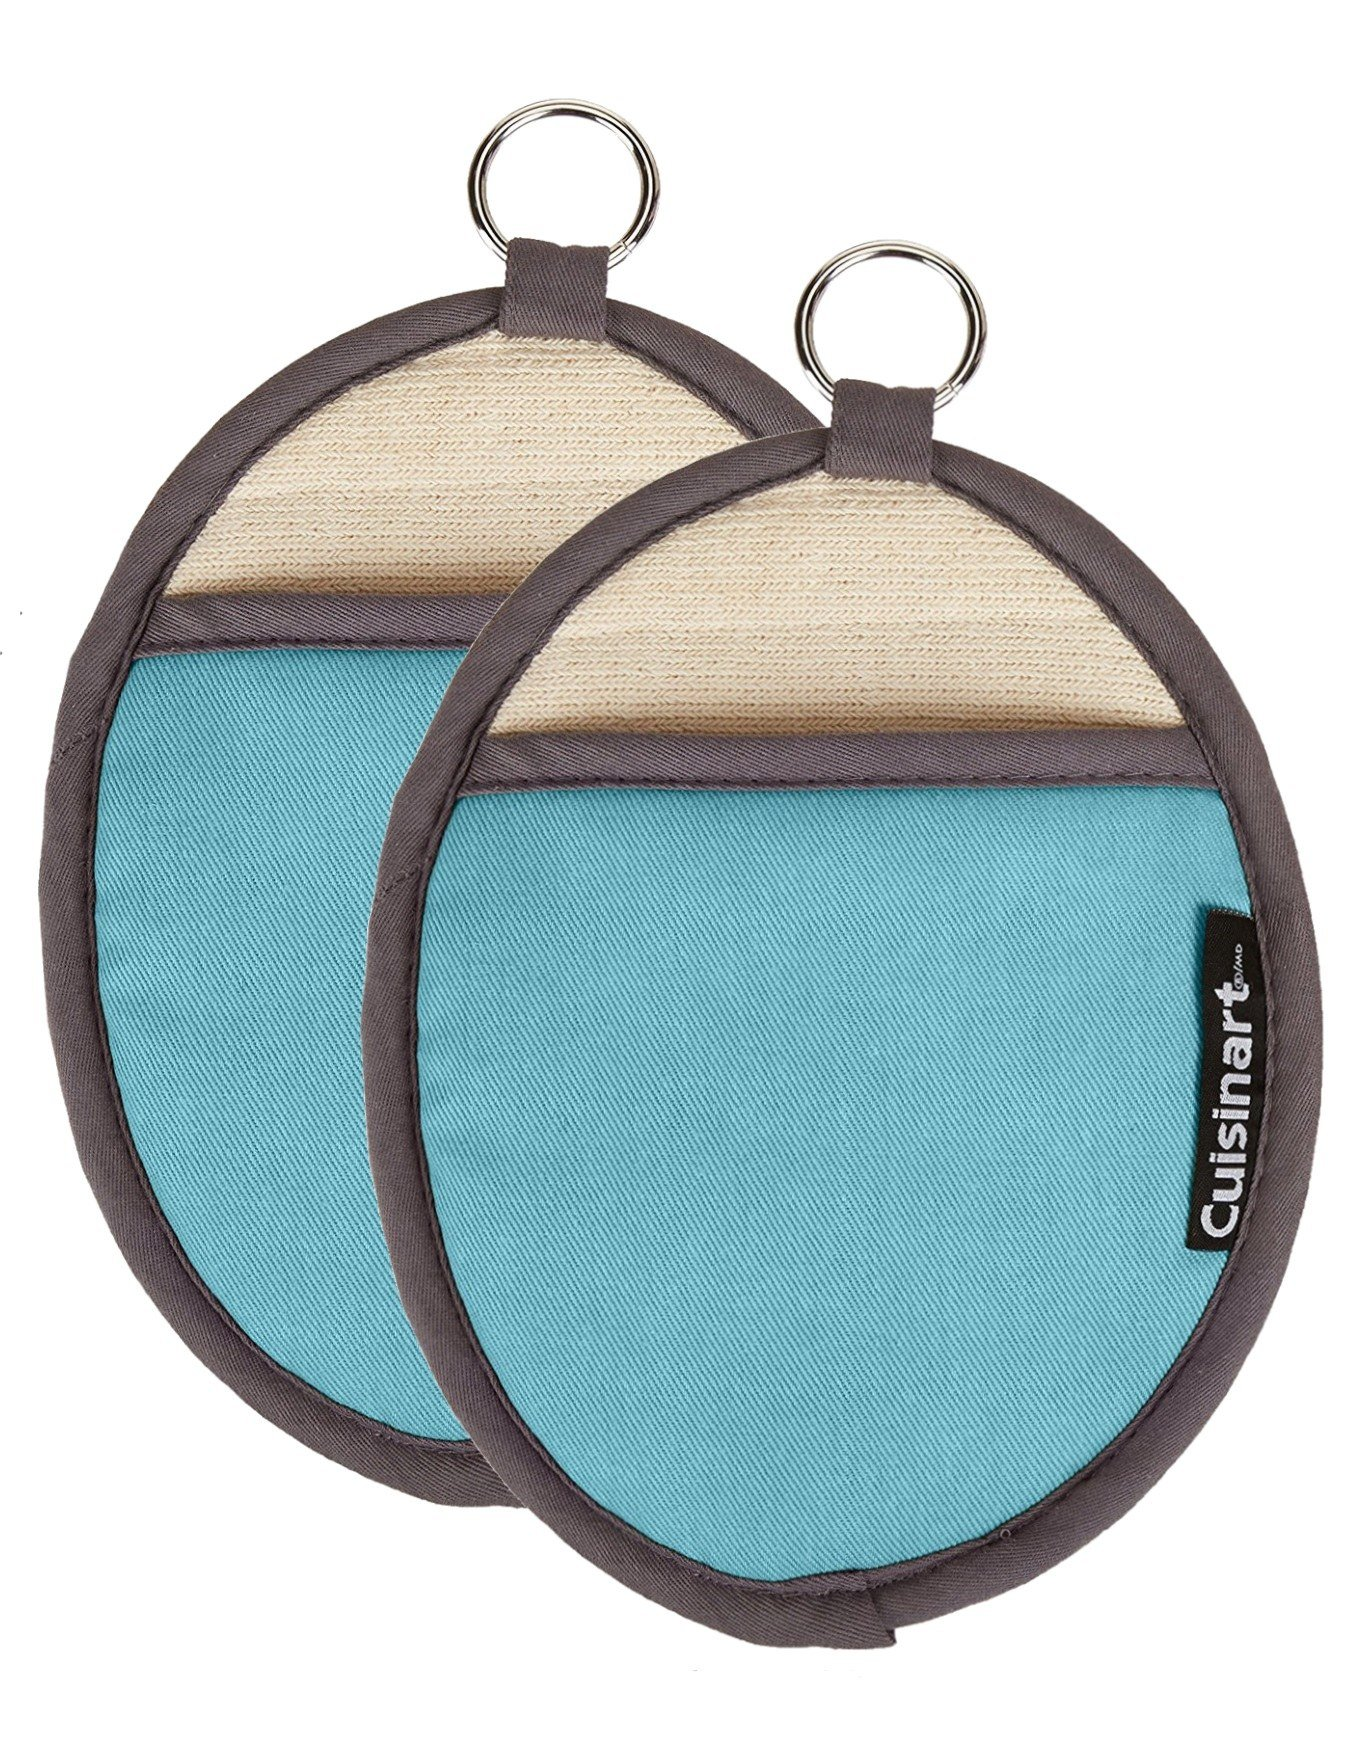 Cuisinart Oval Pot Holder/Oven Mitt w/ Pocket & Heat Resistant Non-Slip Silicone Grip, Aqua- 2pk